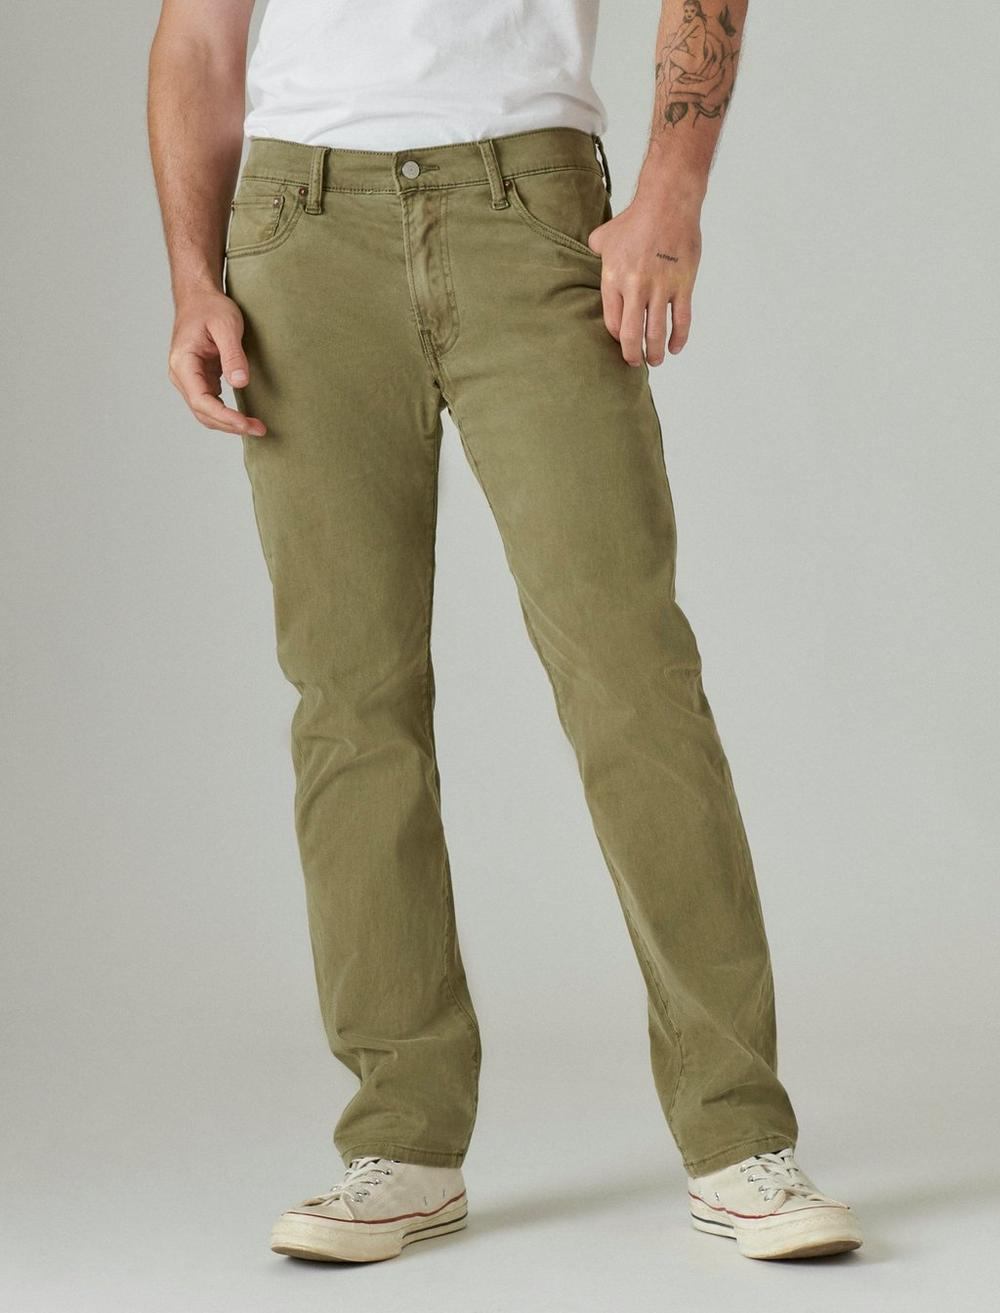 410 ATHLETIC STRAIGHT SATEEN STRETCH JEAN, image 4